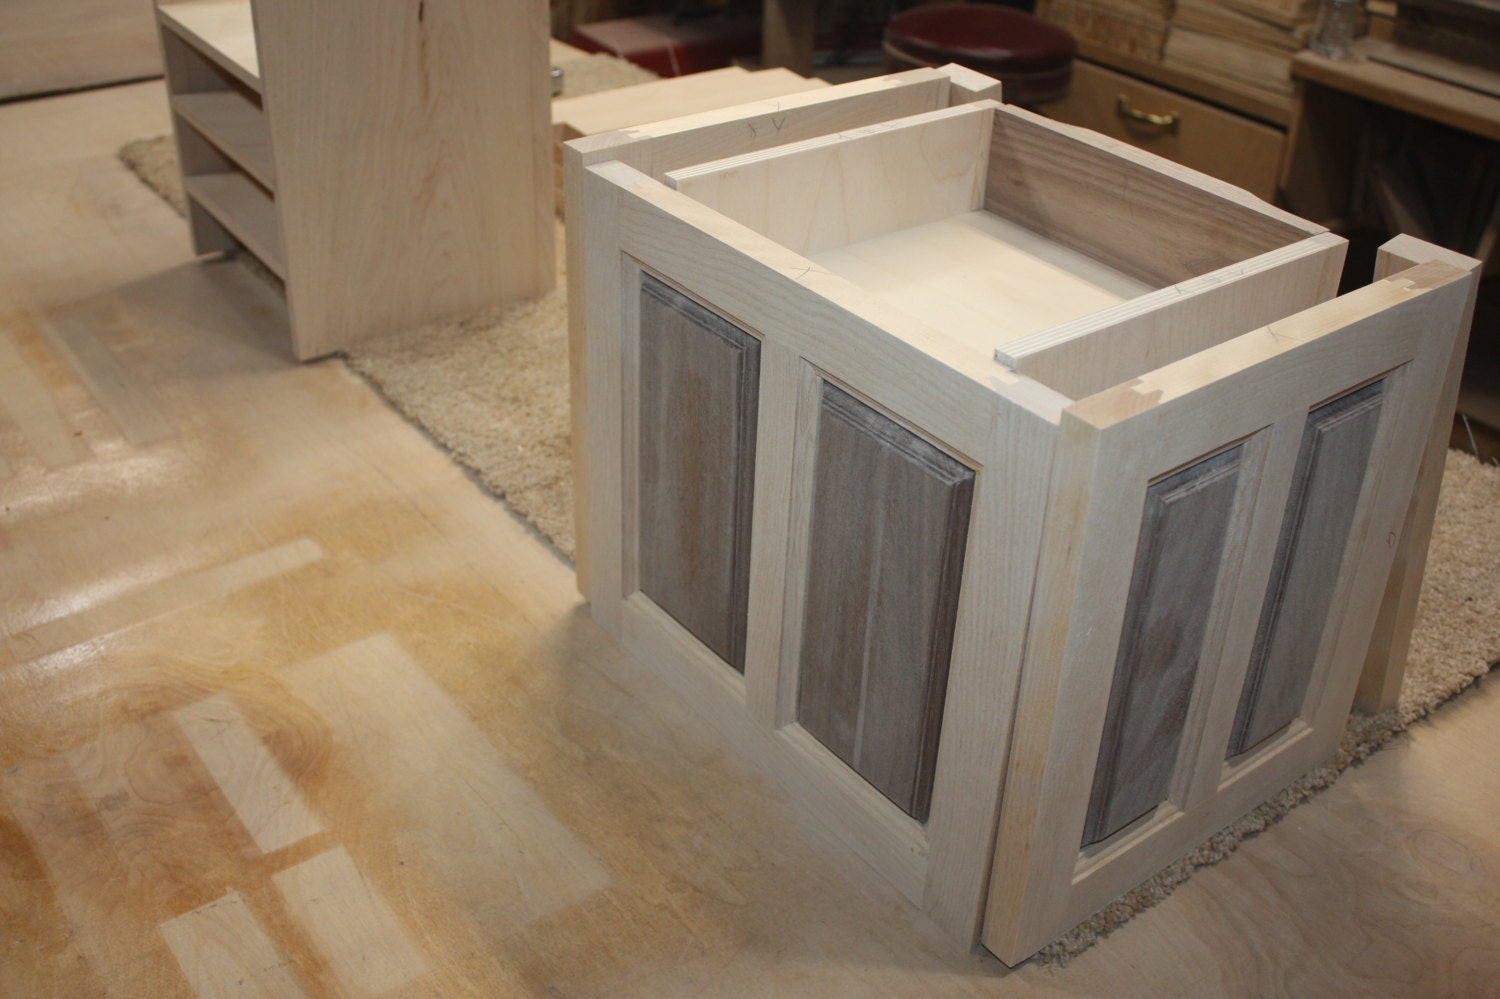 Making a Jewelry Box with Swing Out Sides for Necklaces